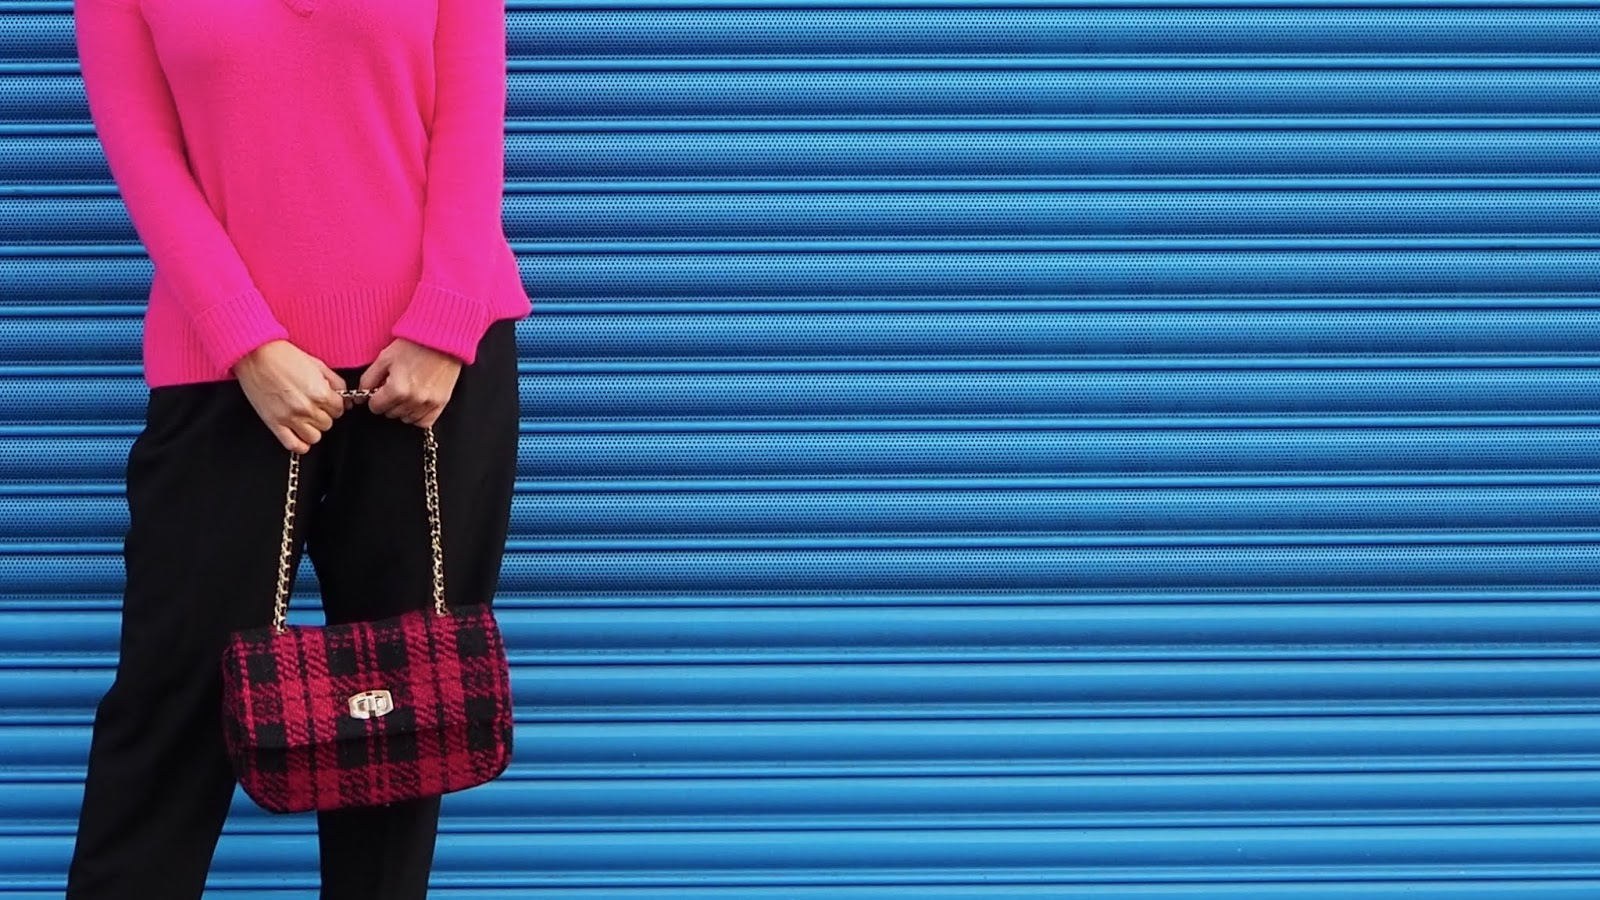 Hot Pink & Black Tweed Bag with Gold Chain strap